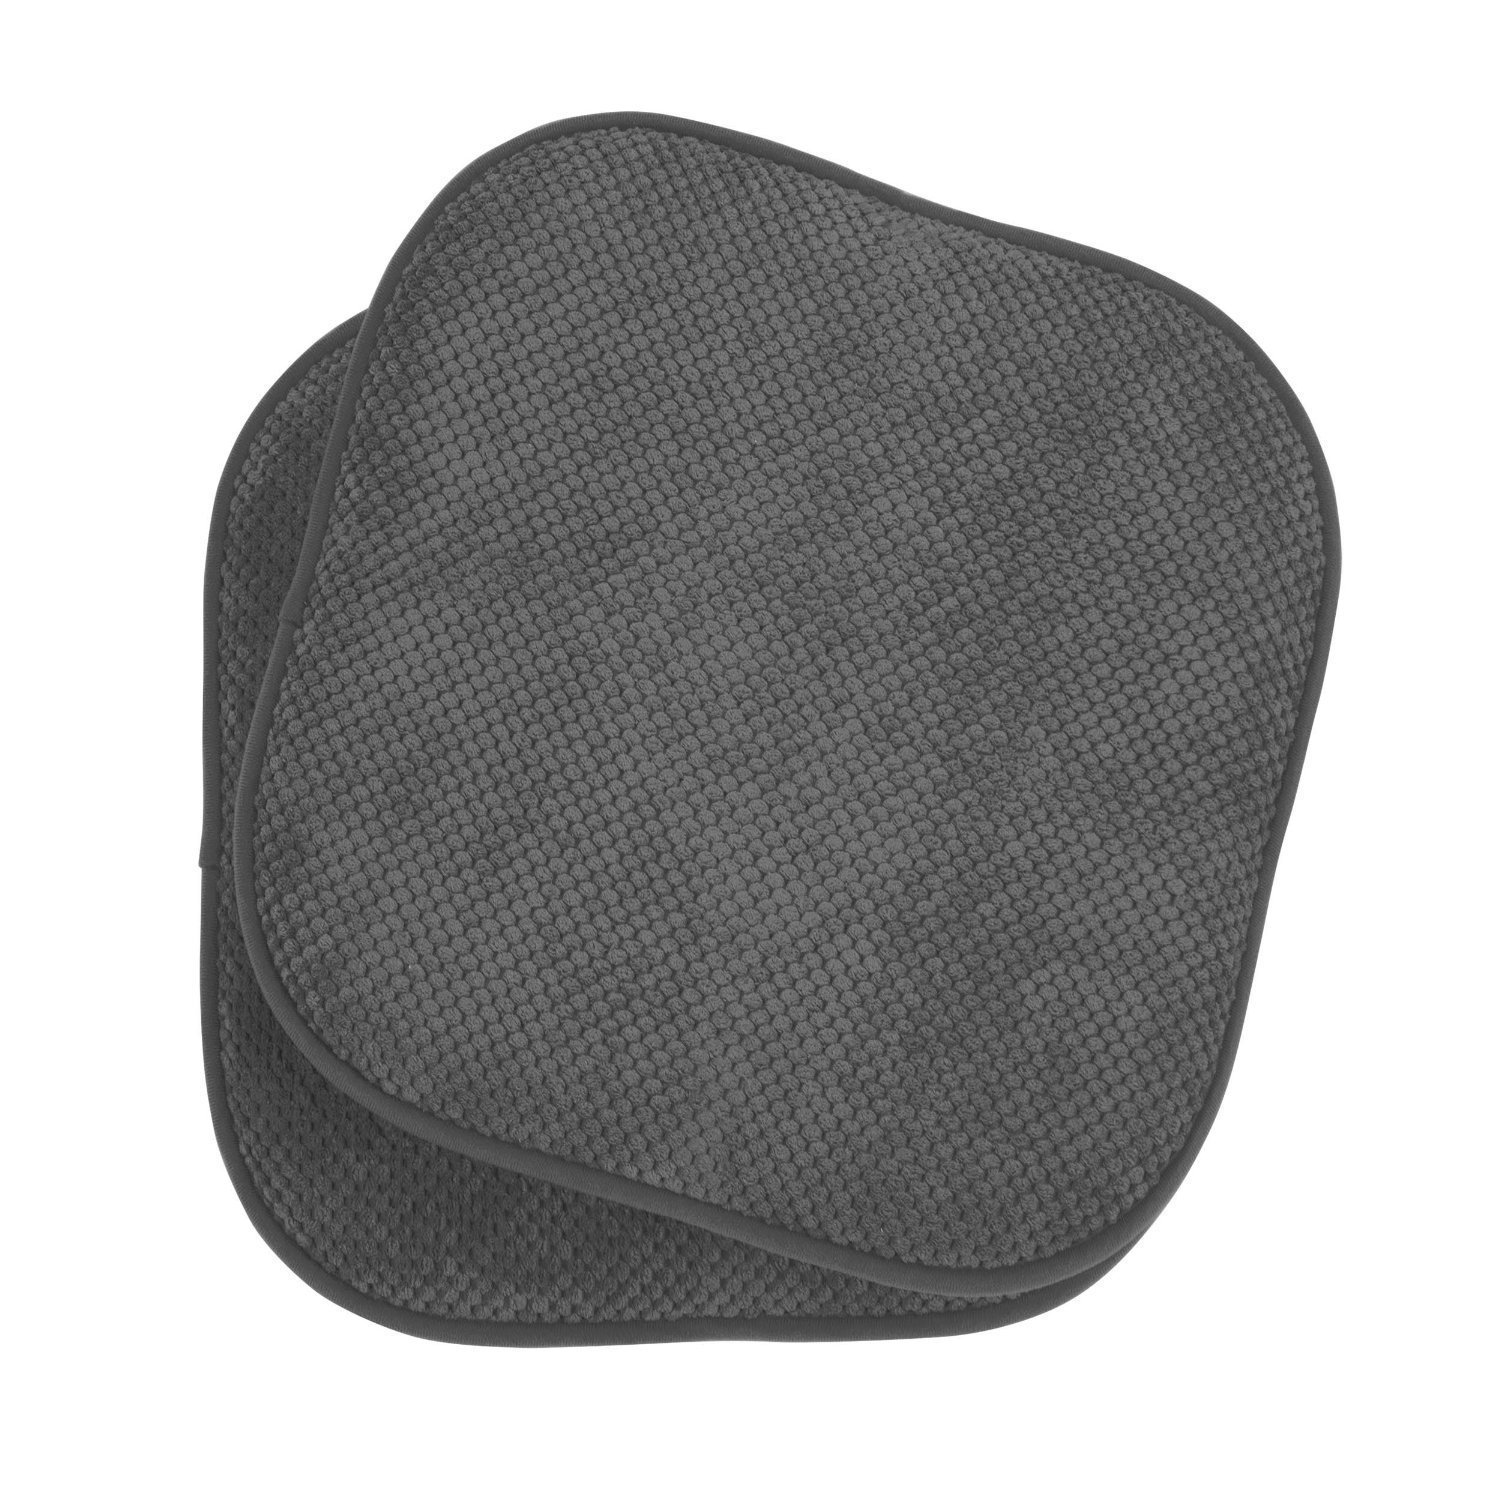 2 Pack: GoodGram Non Slip Ultra Comfort Memory Foam Chair Pads Charcoal by GoodGram